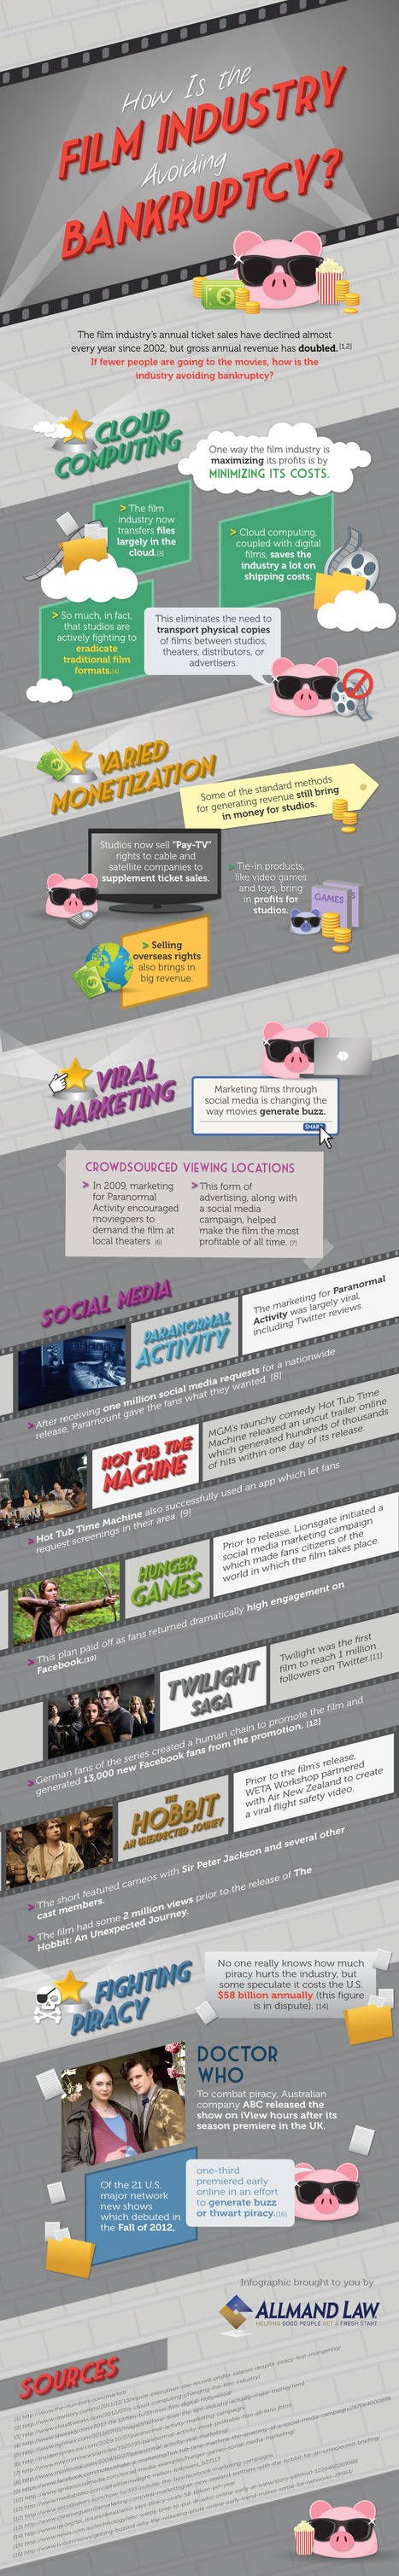 How Social Media and Viral Marketing are Saving the Film Industry [INFOGRAPHIC] | Social Media, Transmedia Storytelling & Multiplatform | Scoop.it